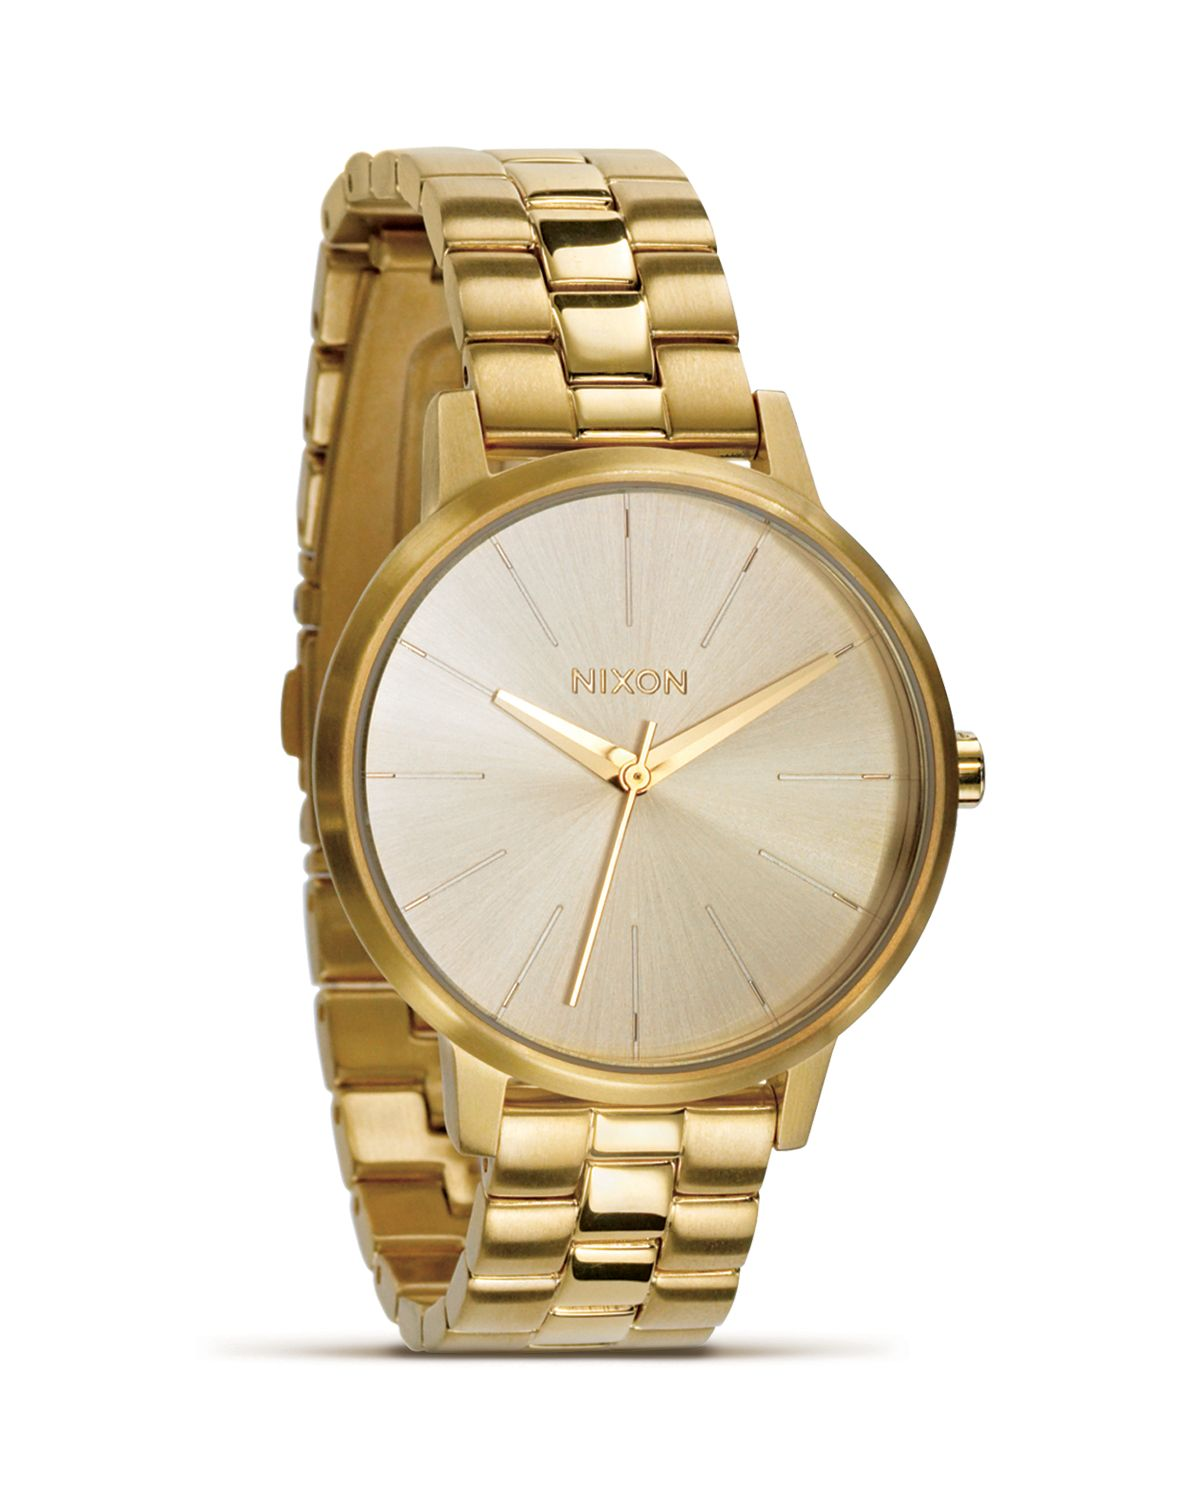 Nixon The Kensington Gold Bracelet Watch, 36.5mm | Bloomingdale's